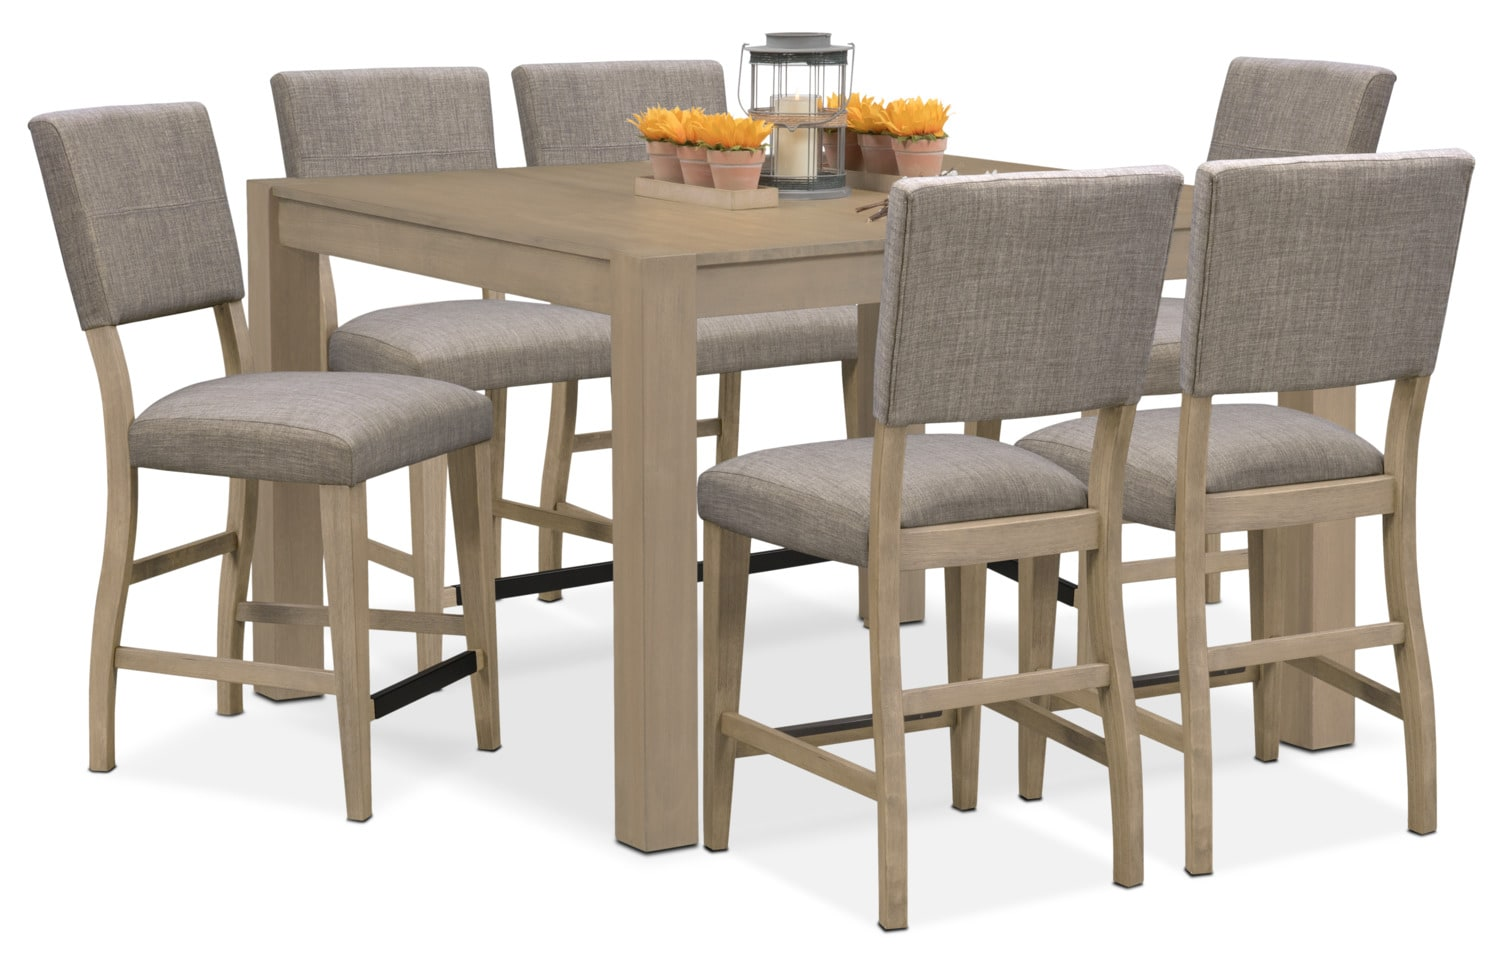 Tribeca Counter-Height Table and 6 Upholstered Side Chairs - Gray